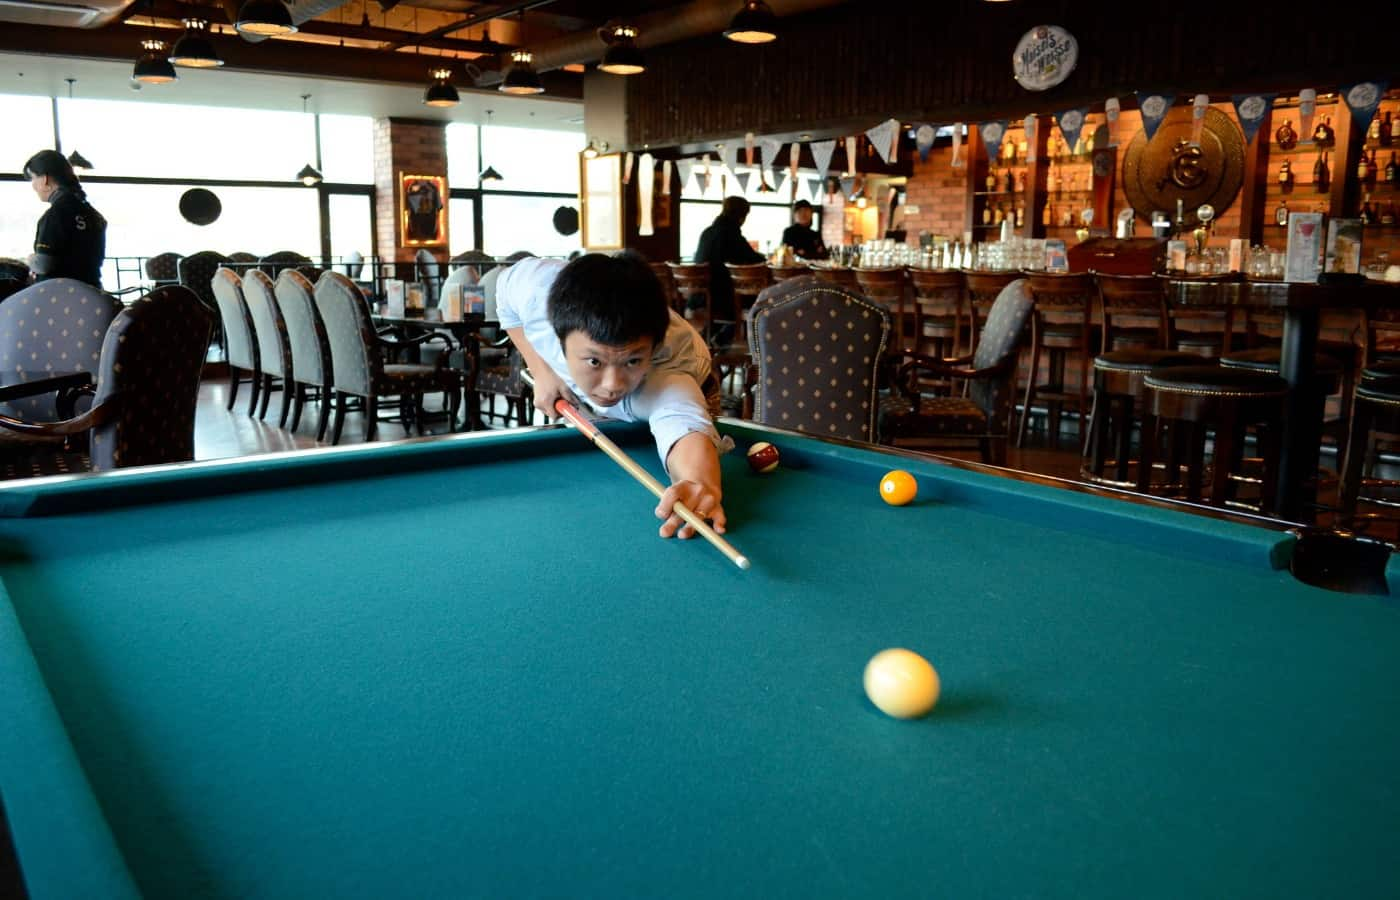 can playing pool cause shoulder pain